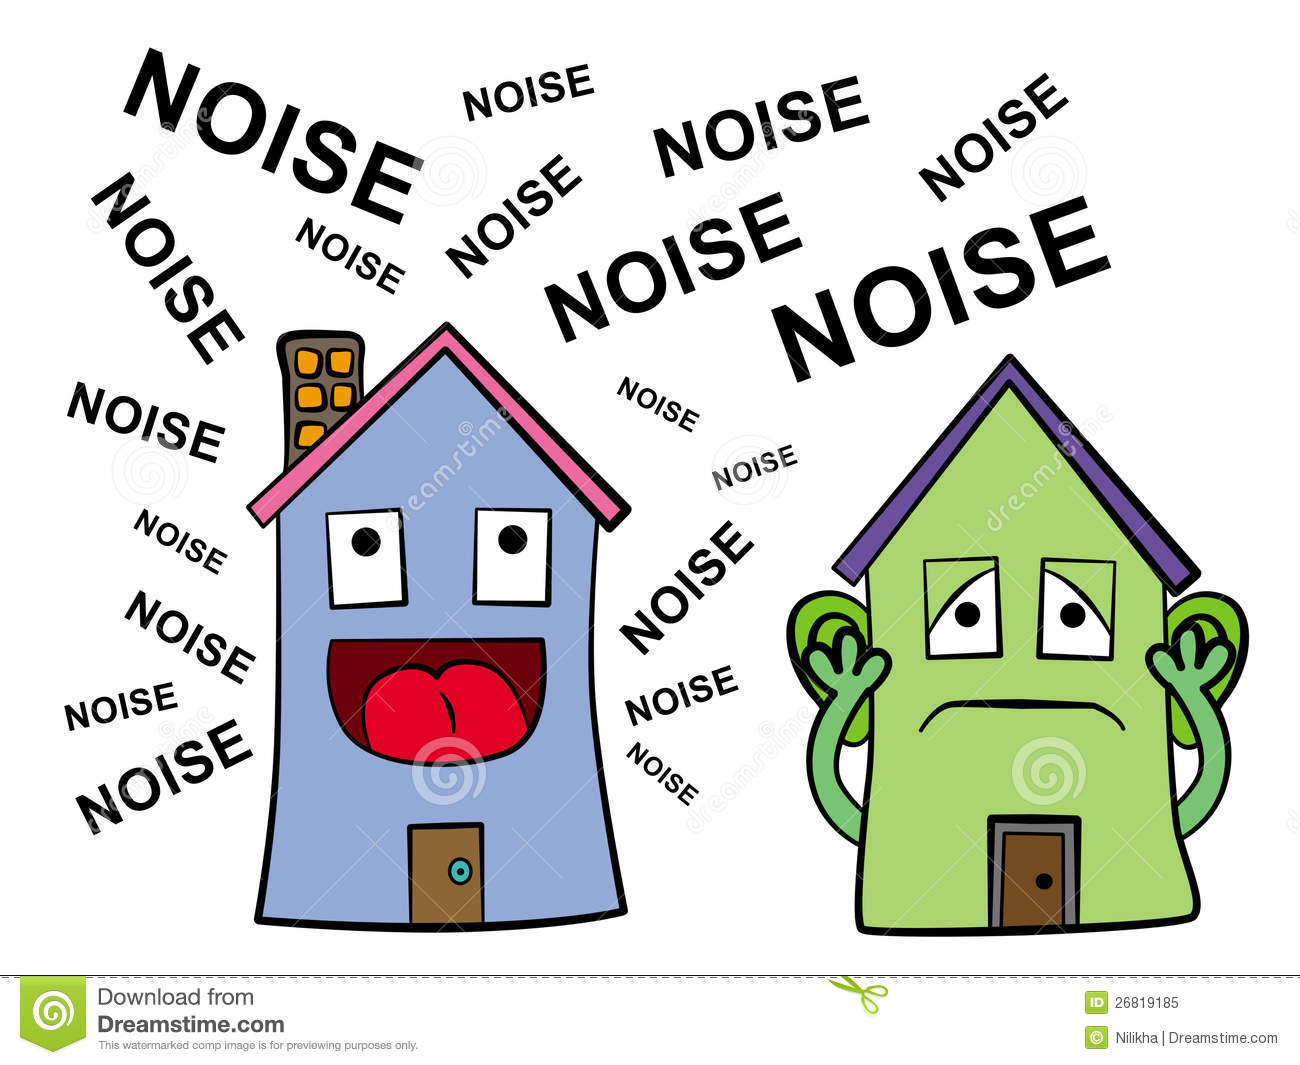 Noise clipart noisy child For is N is The